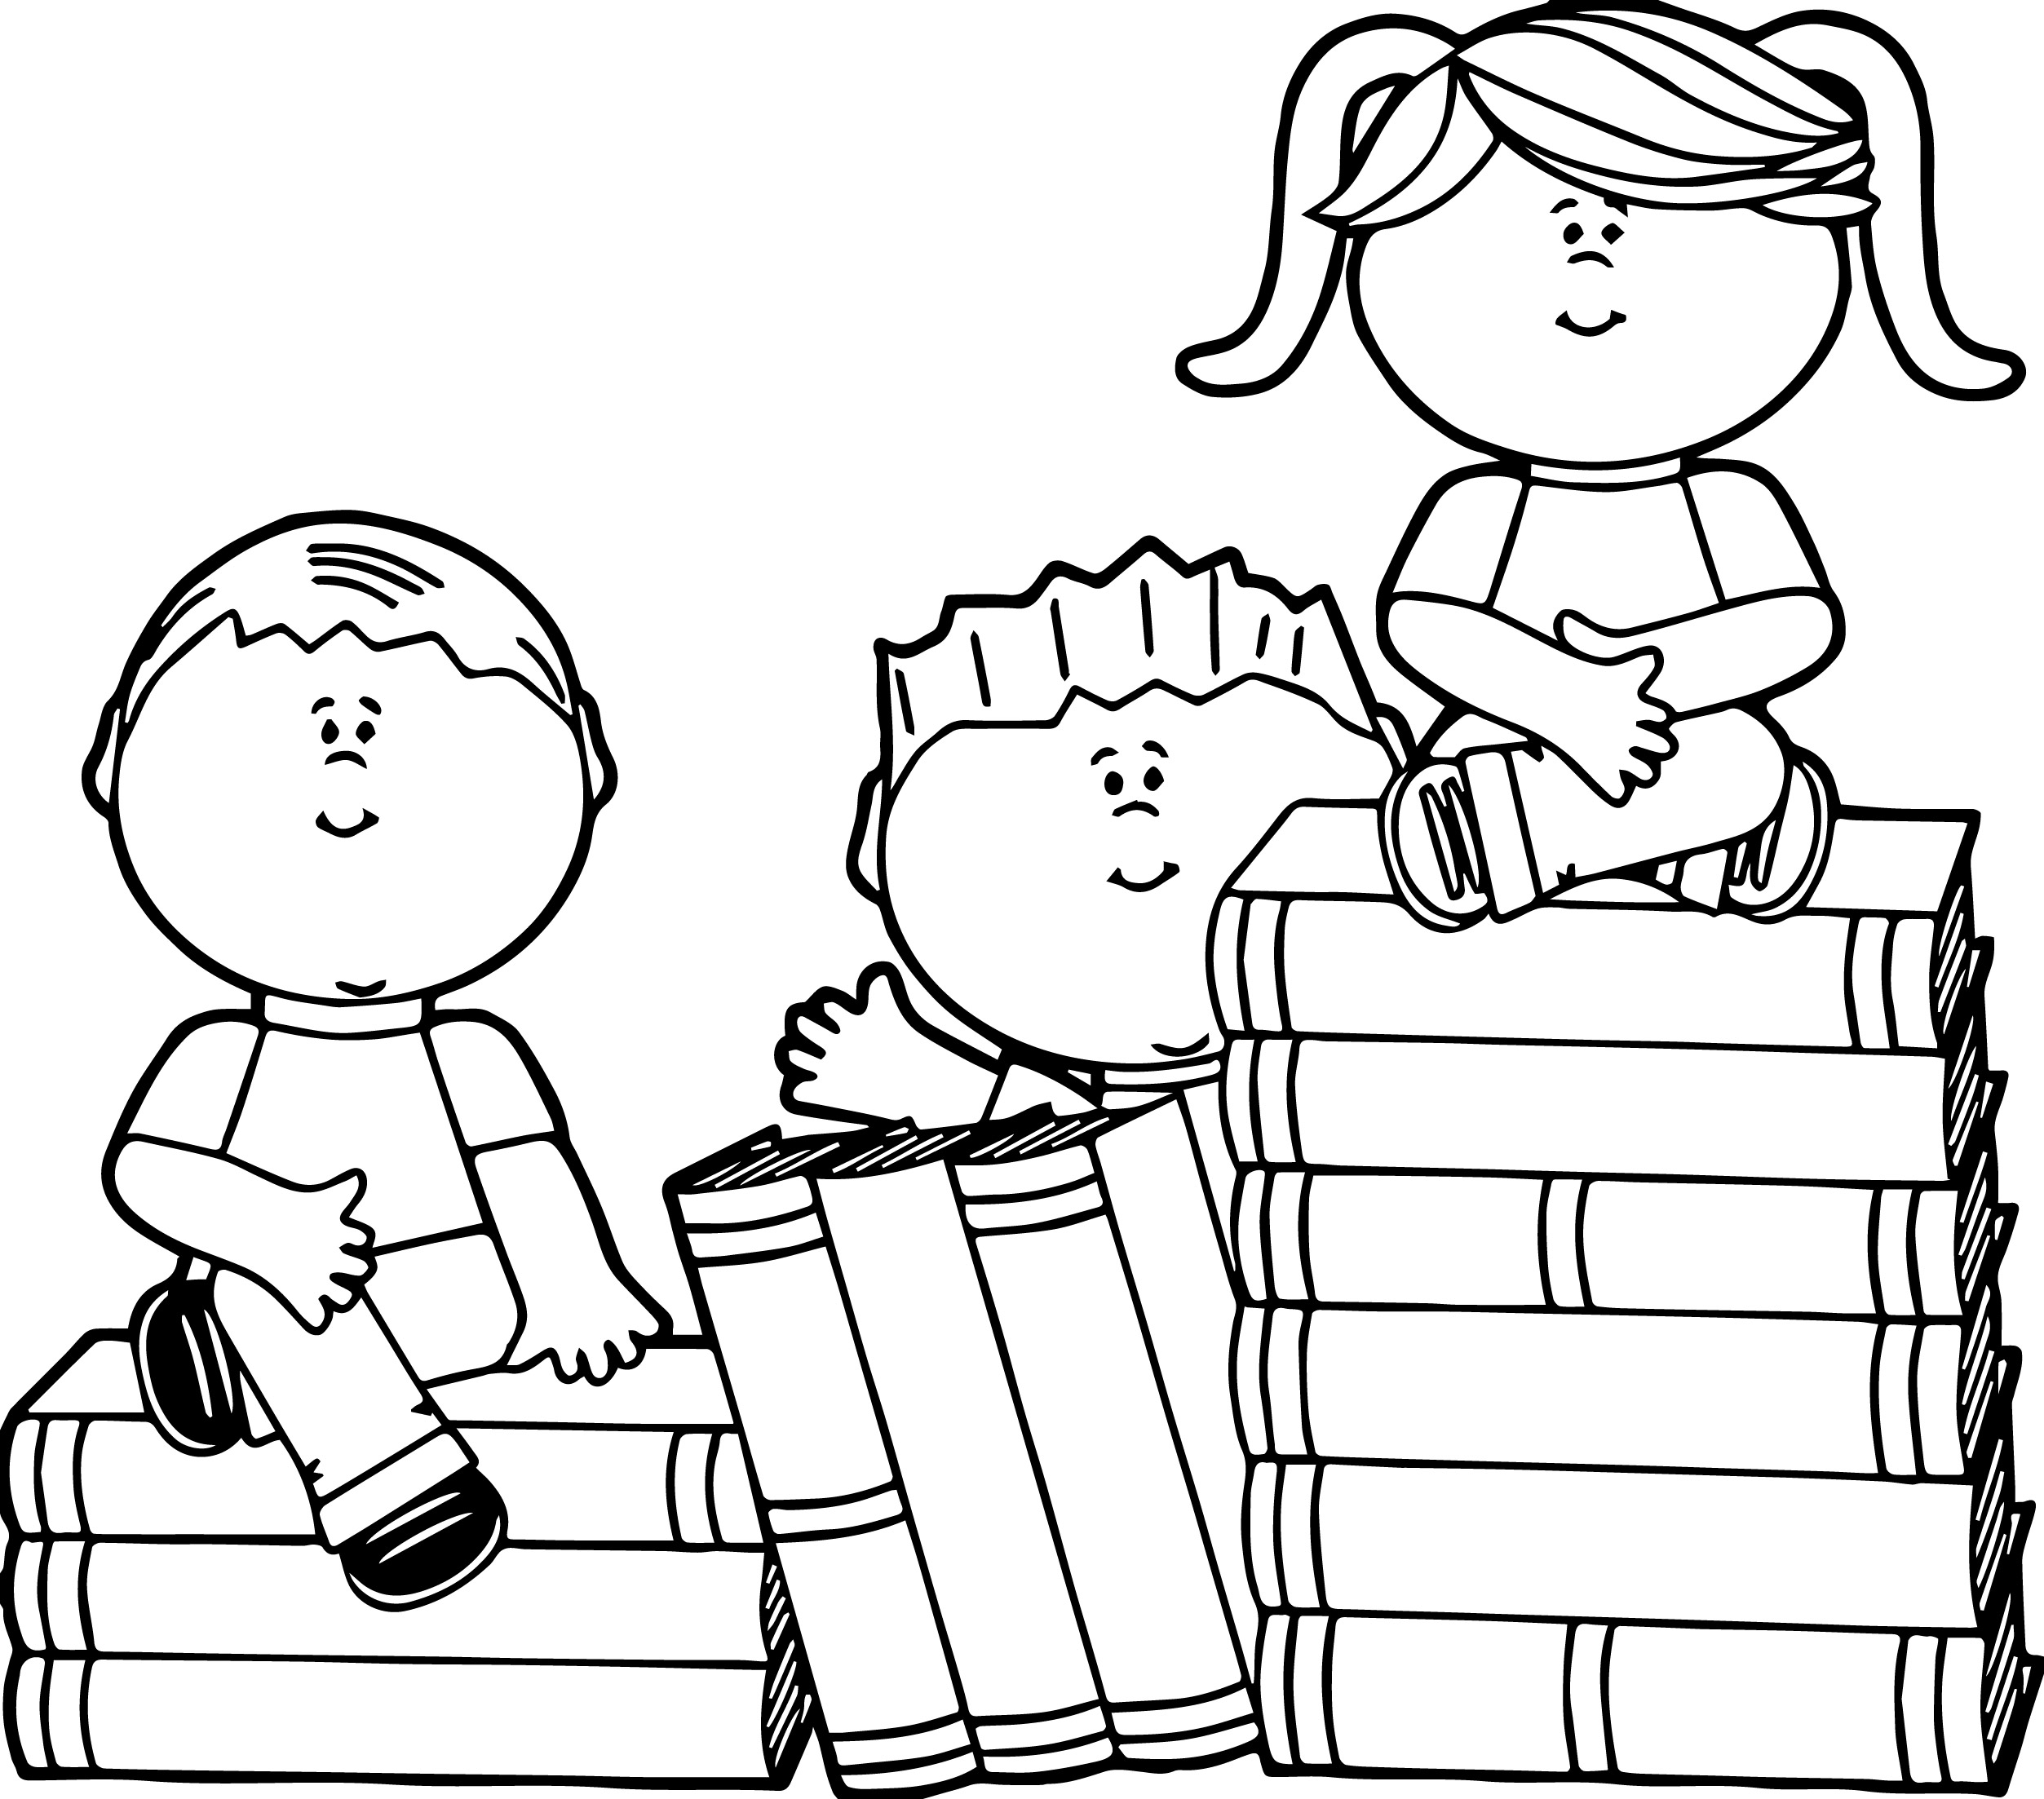 Books coloring pages best coloring pages for kids for Coloring book pages for toddlers